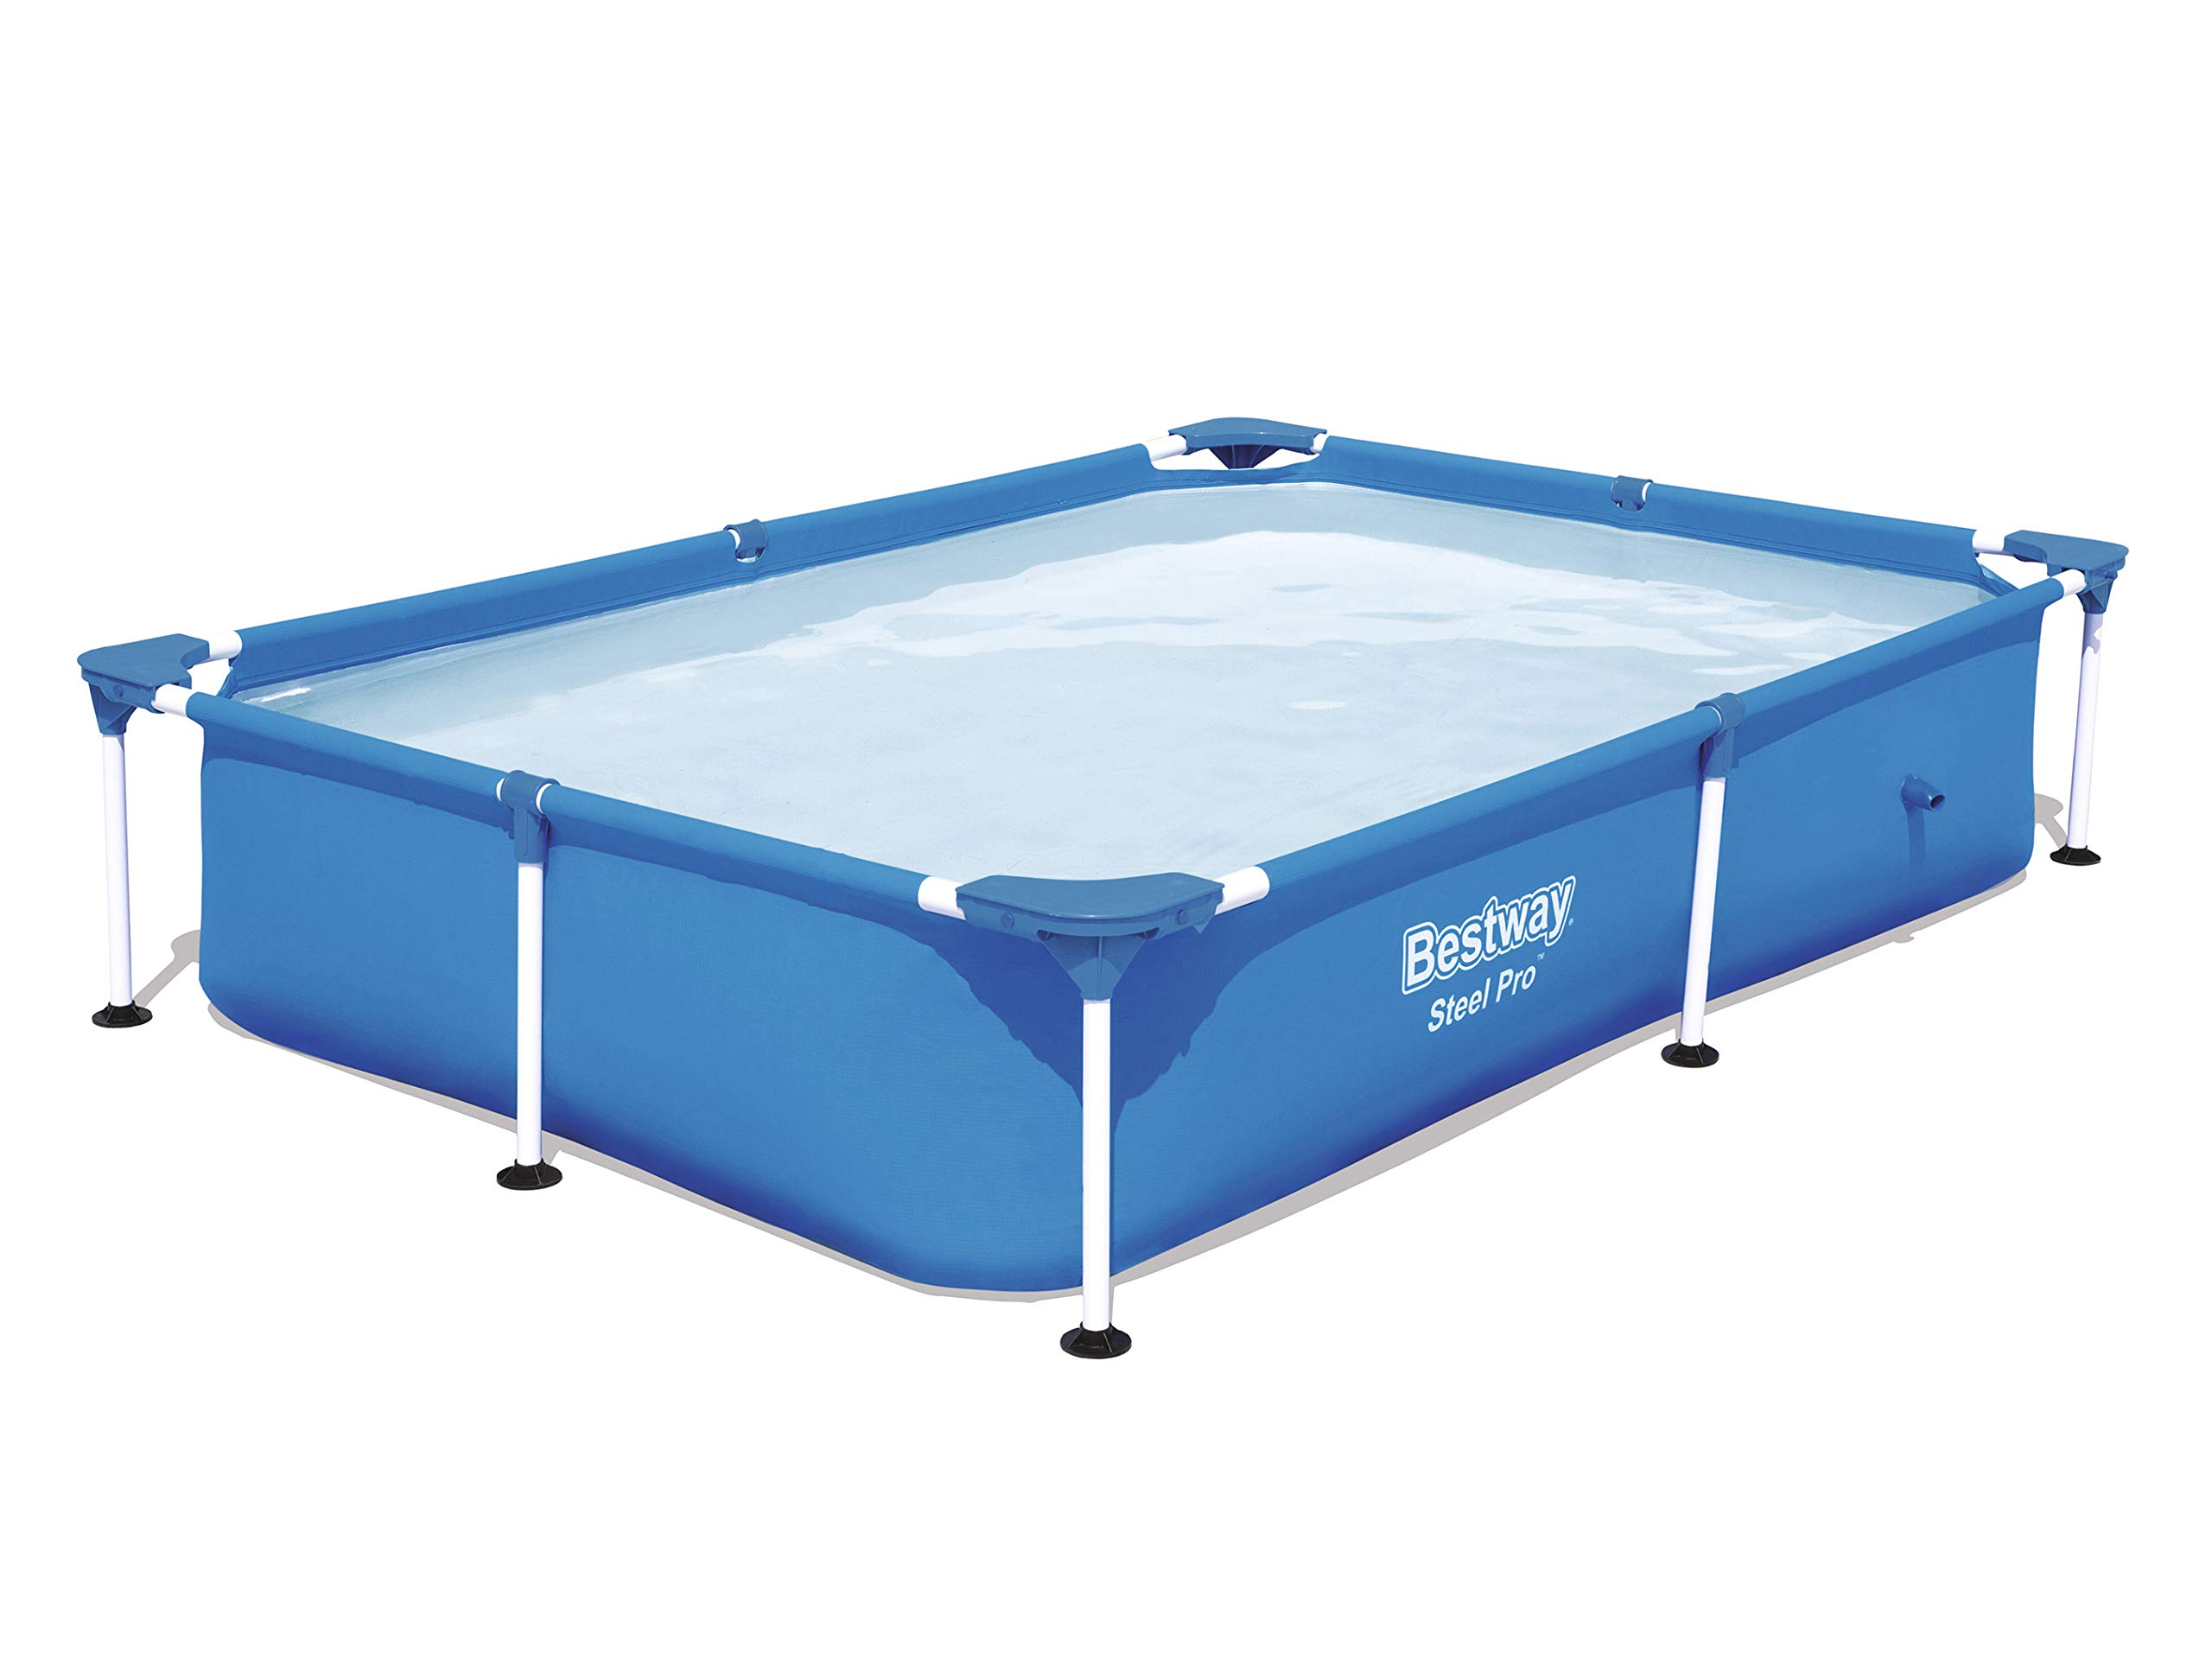 7 in1 Set Splash Frame Pool 239 x 150 x 58 cm Bestway 56402 con ...